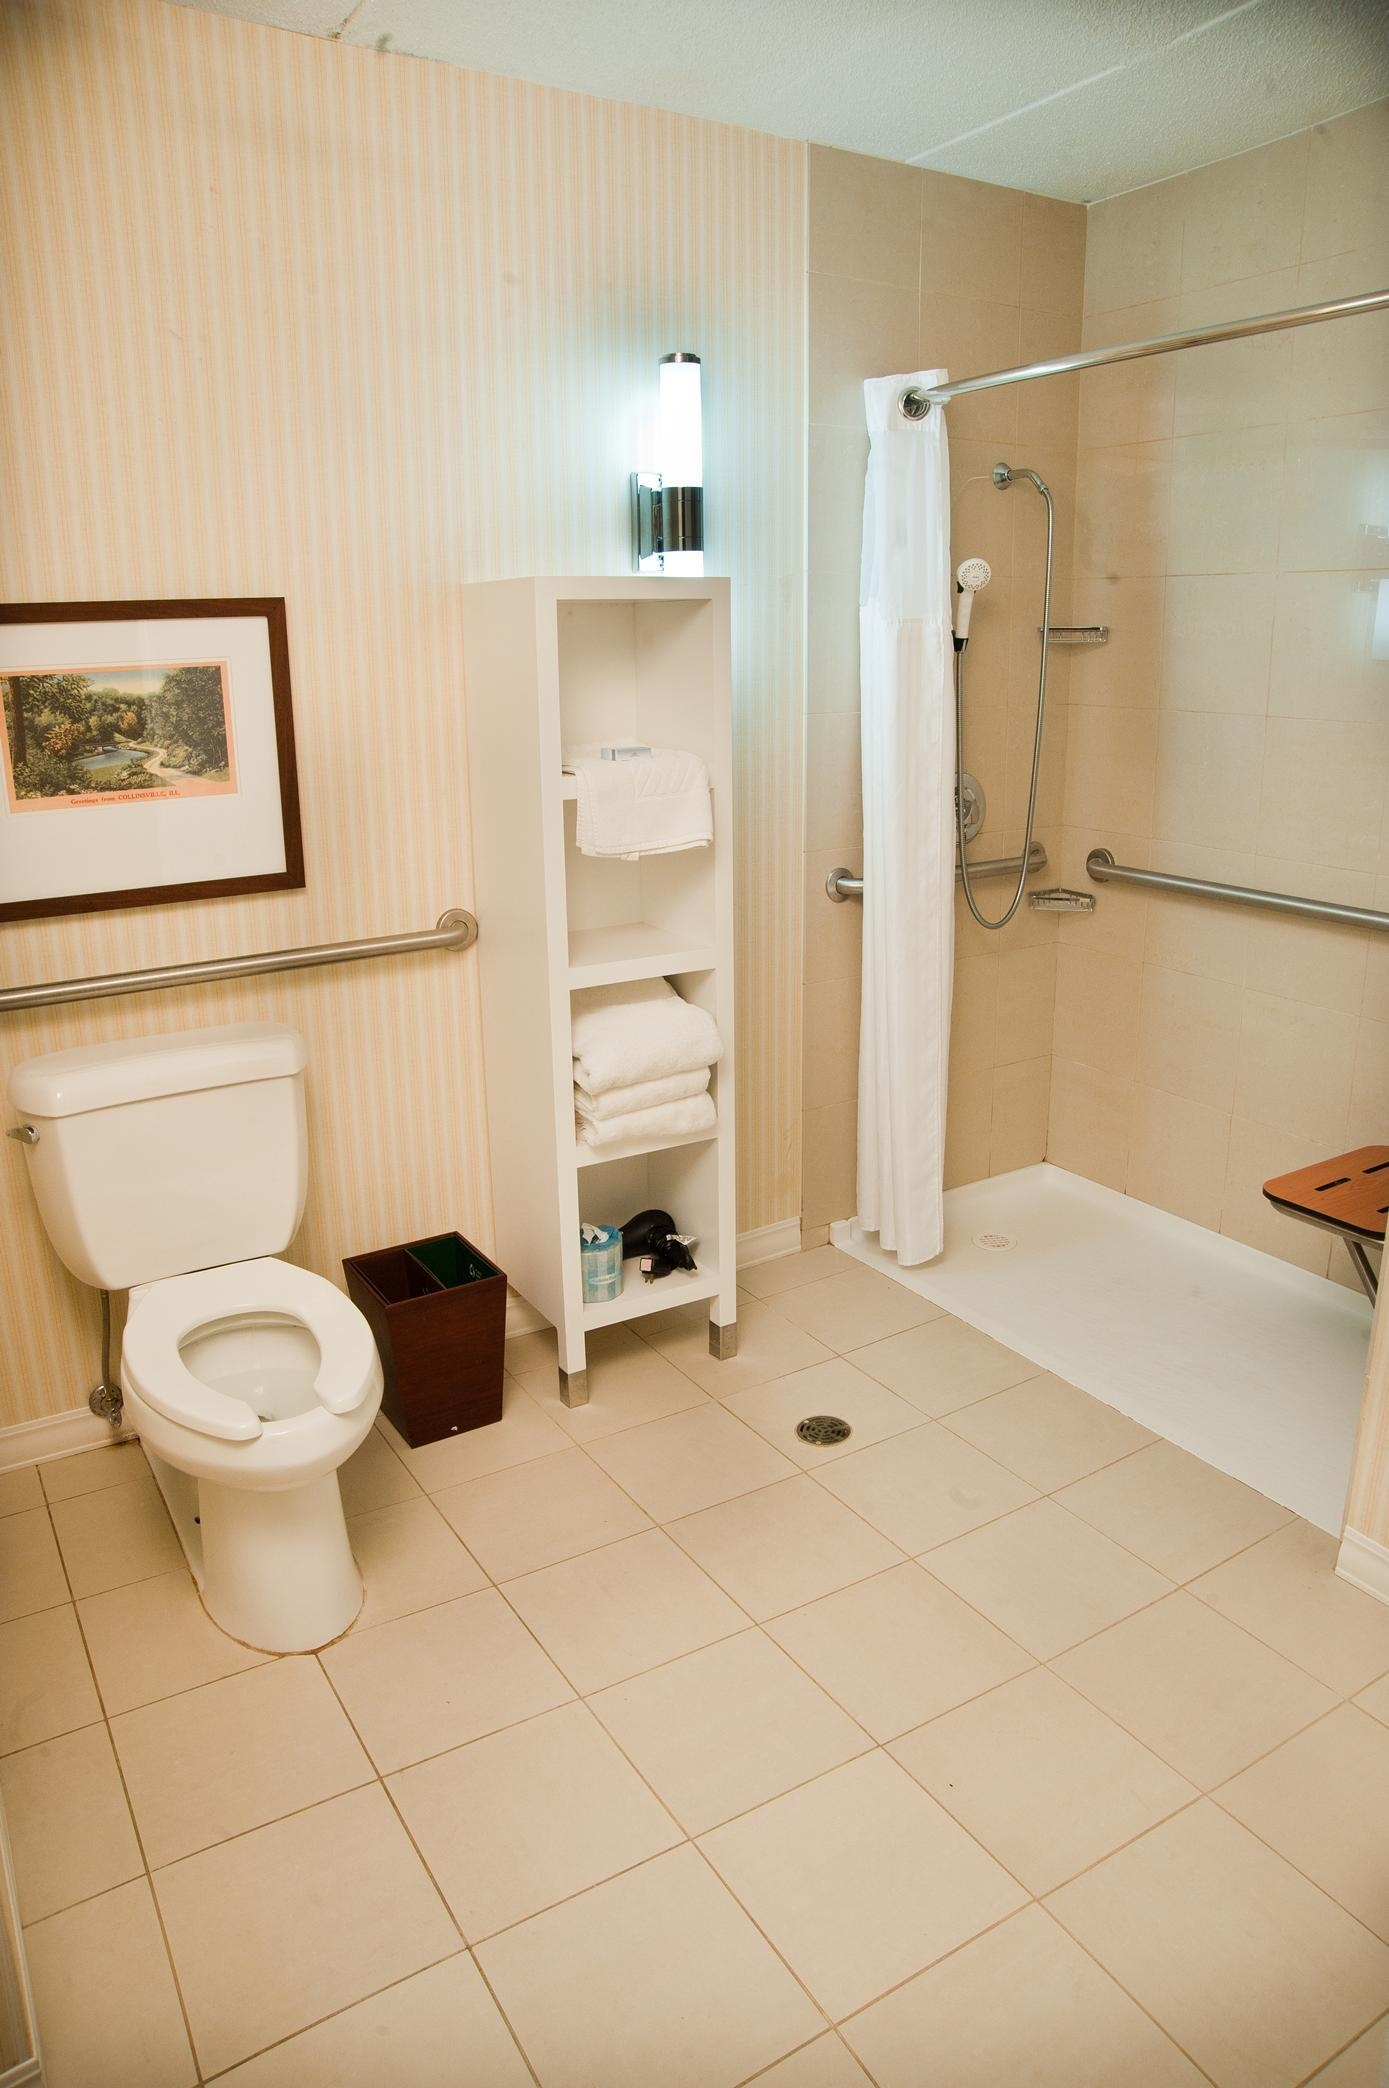 DoubleTree by Hilton Hotel Collinsville - St. Louis image 38